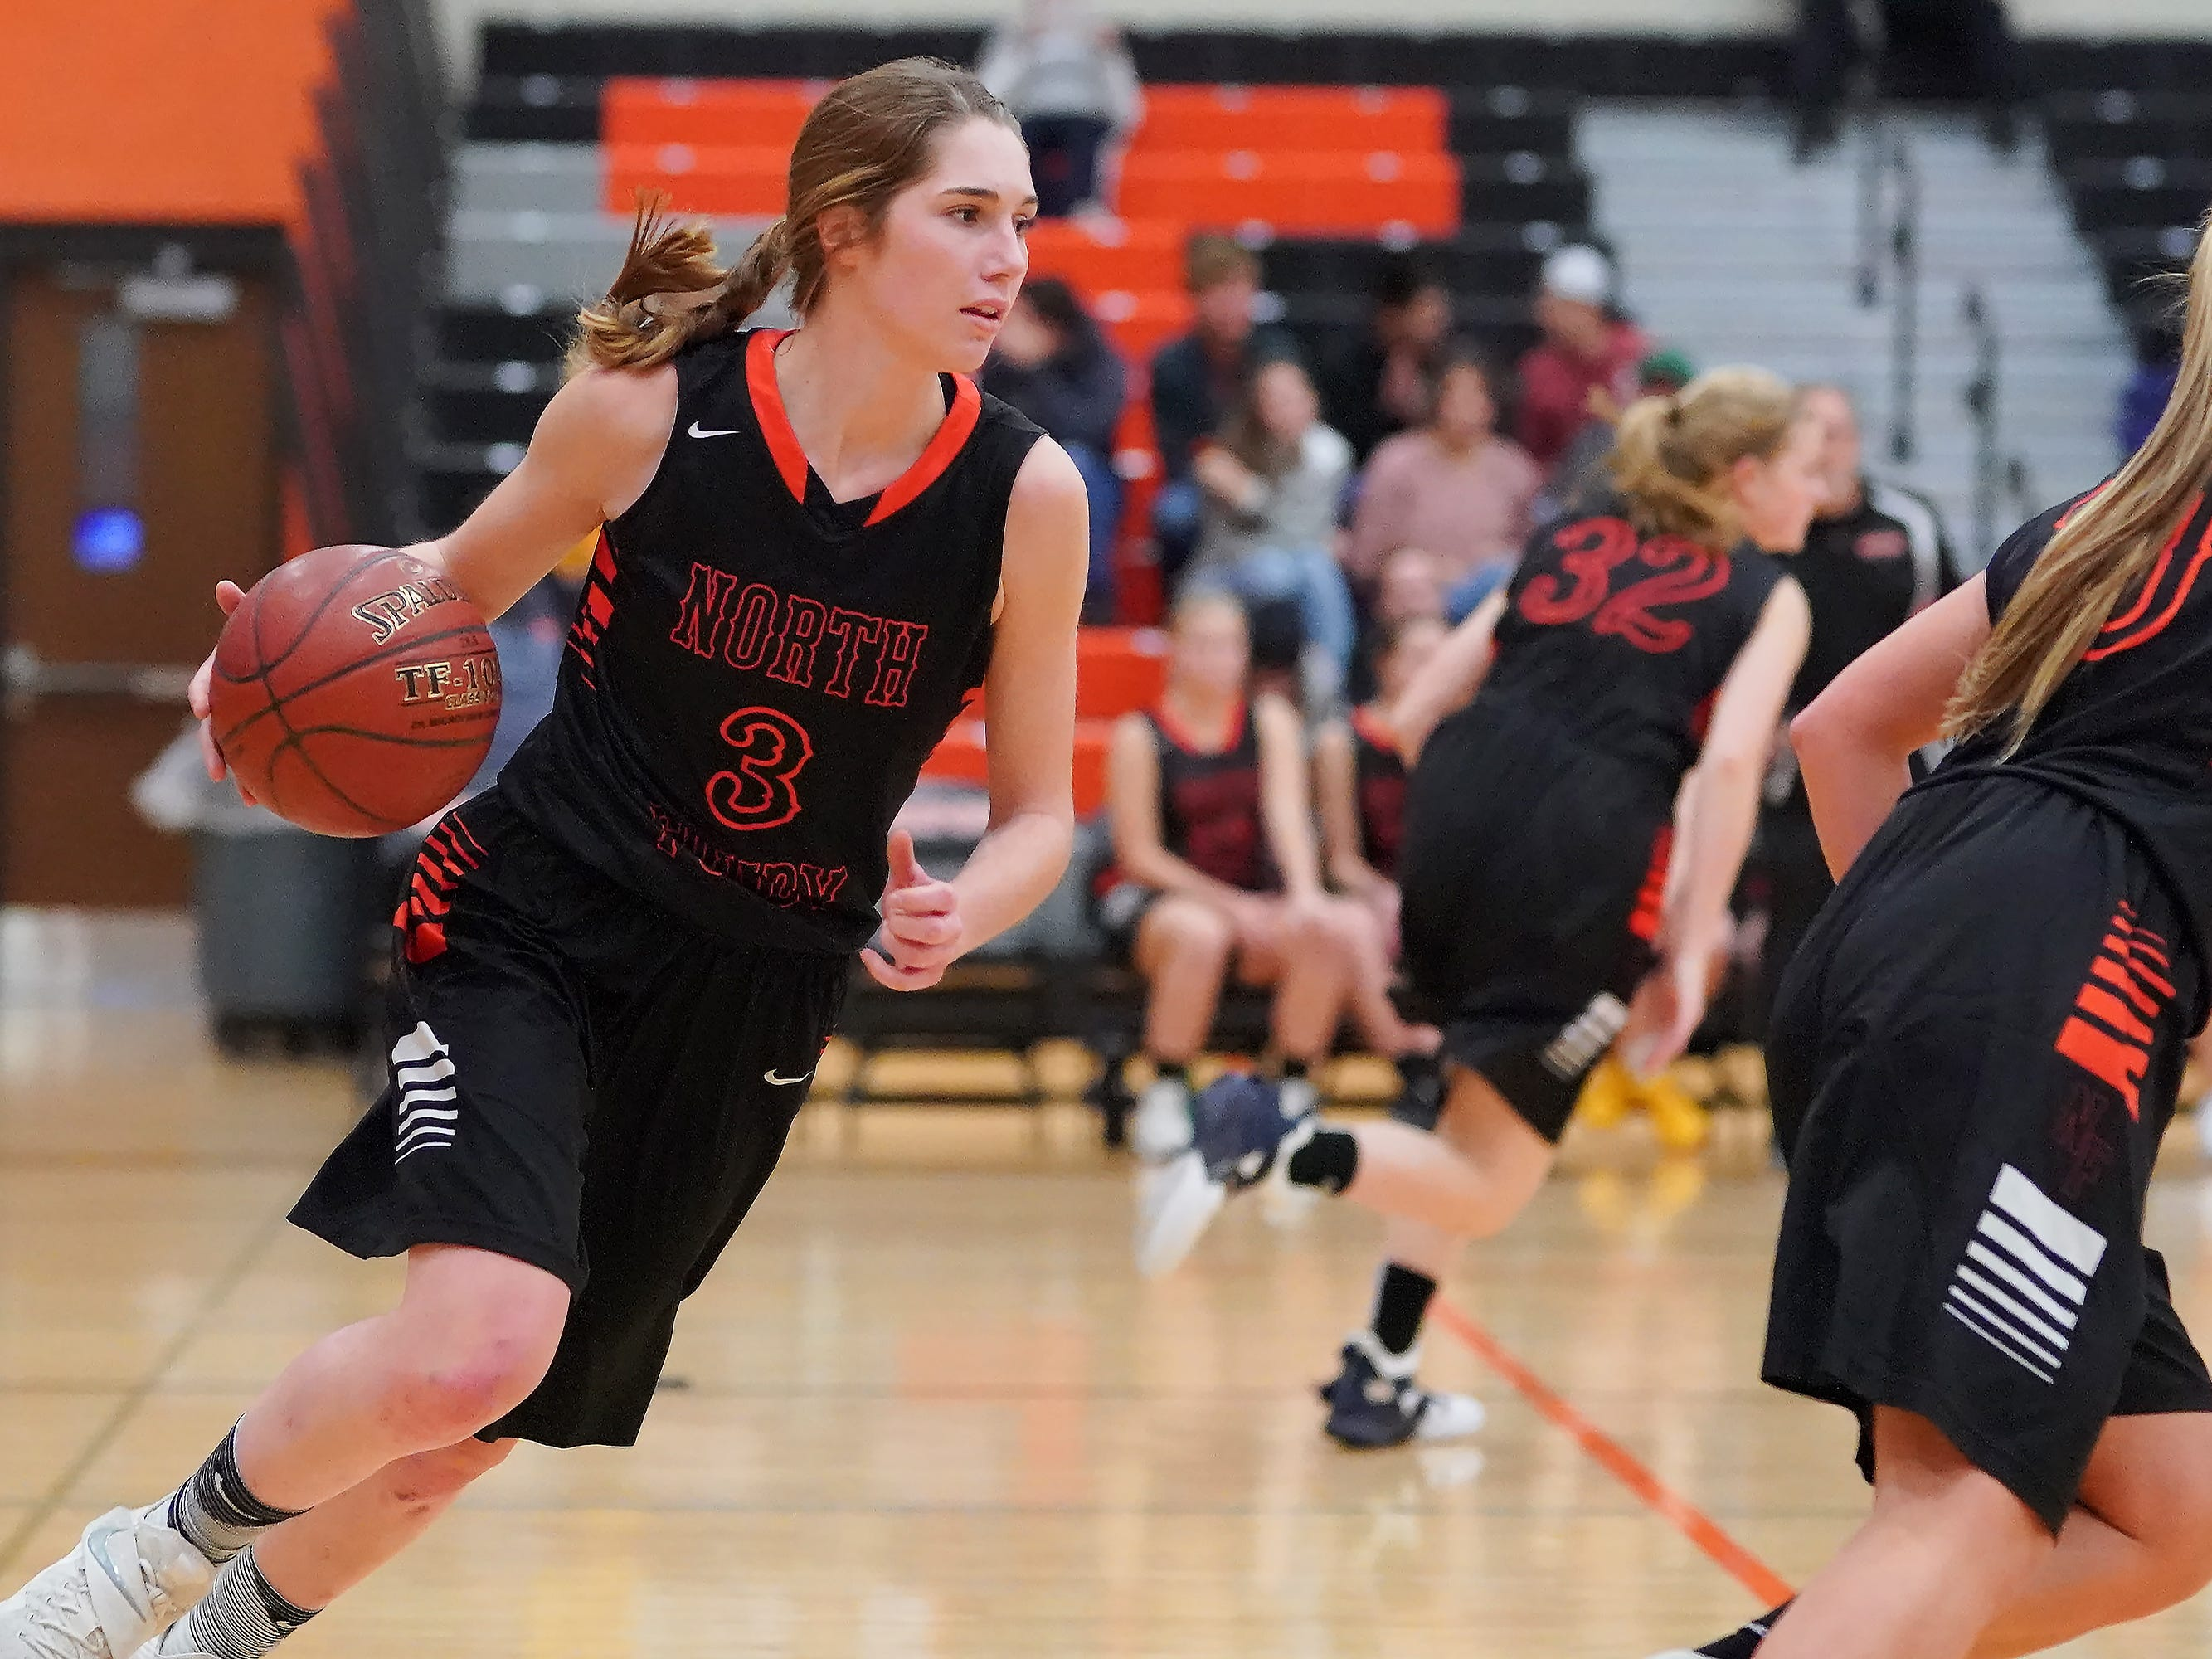 Rebecca Kingsland (3) of North Fond du Lac brings the ball down court. The Ripon Tigers hosted the North Fond du Lac Orioles in a non-conference basketball game Thursday evening, November 15, 2018.